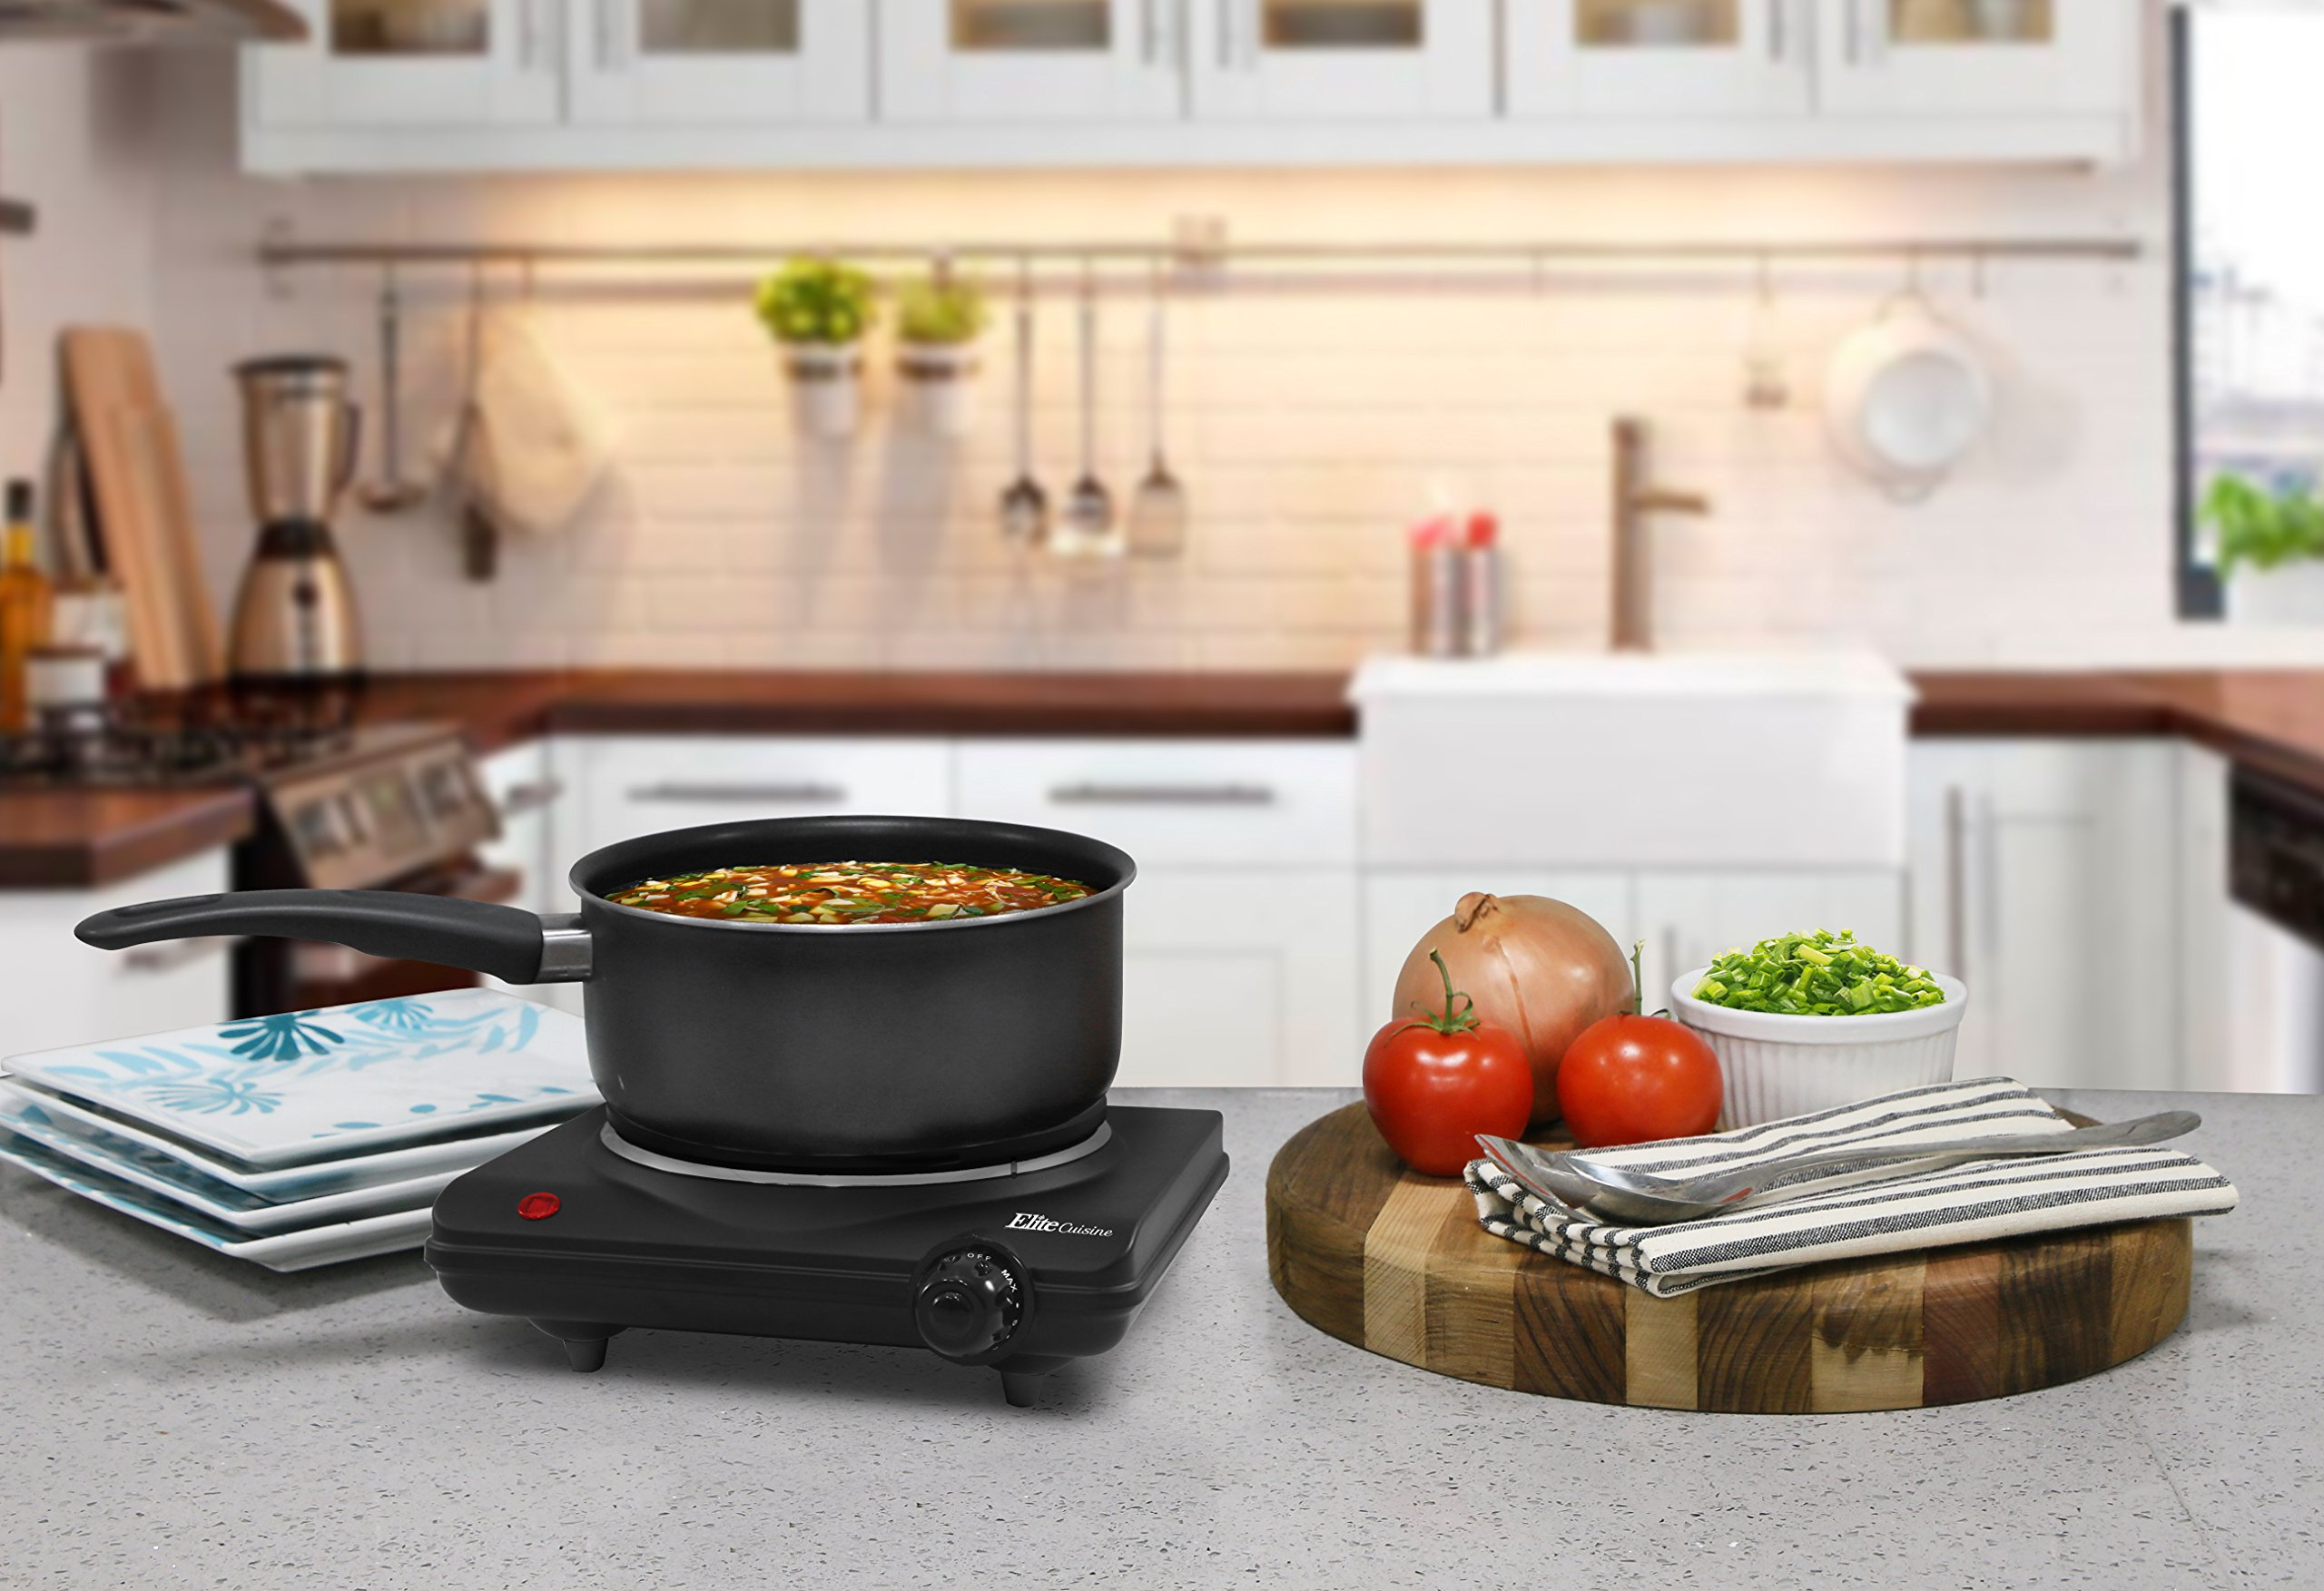 Elite Cuisine ESB-301BF Single Countertop Portable Buffet Burner Electric Hot Plate, Heavy duty flat cast iron heating plate, power indicator light, non-skid feet, easy to clean, 1000 Watts, Black by Maxi-Matic (Image #2)